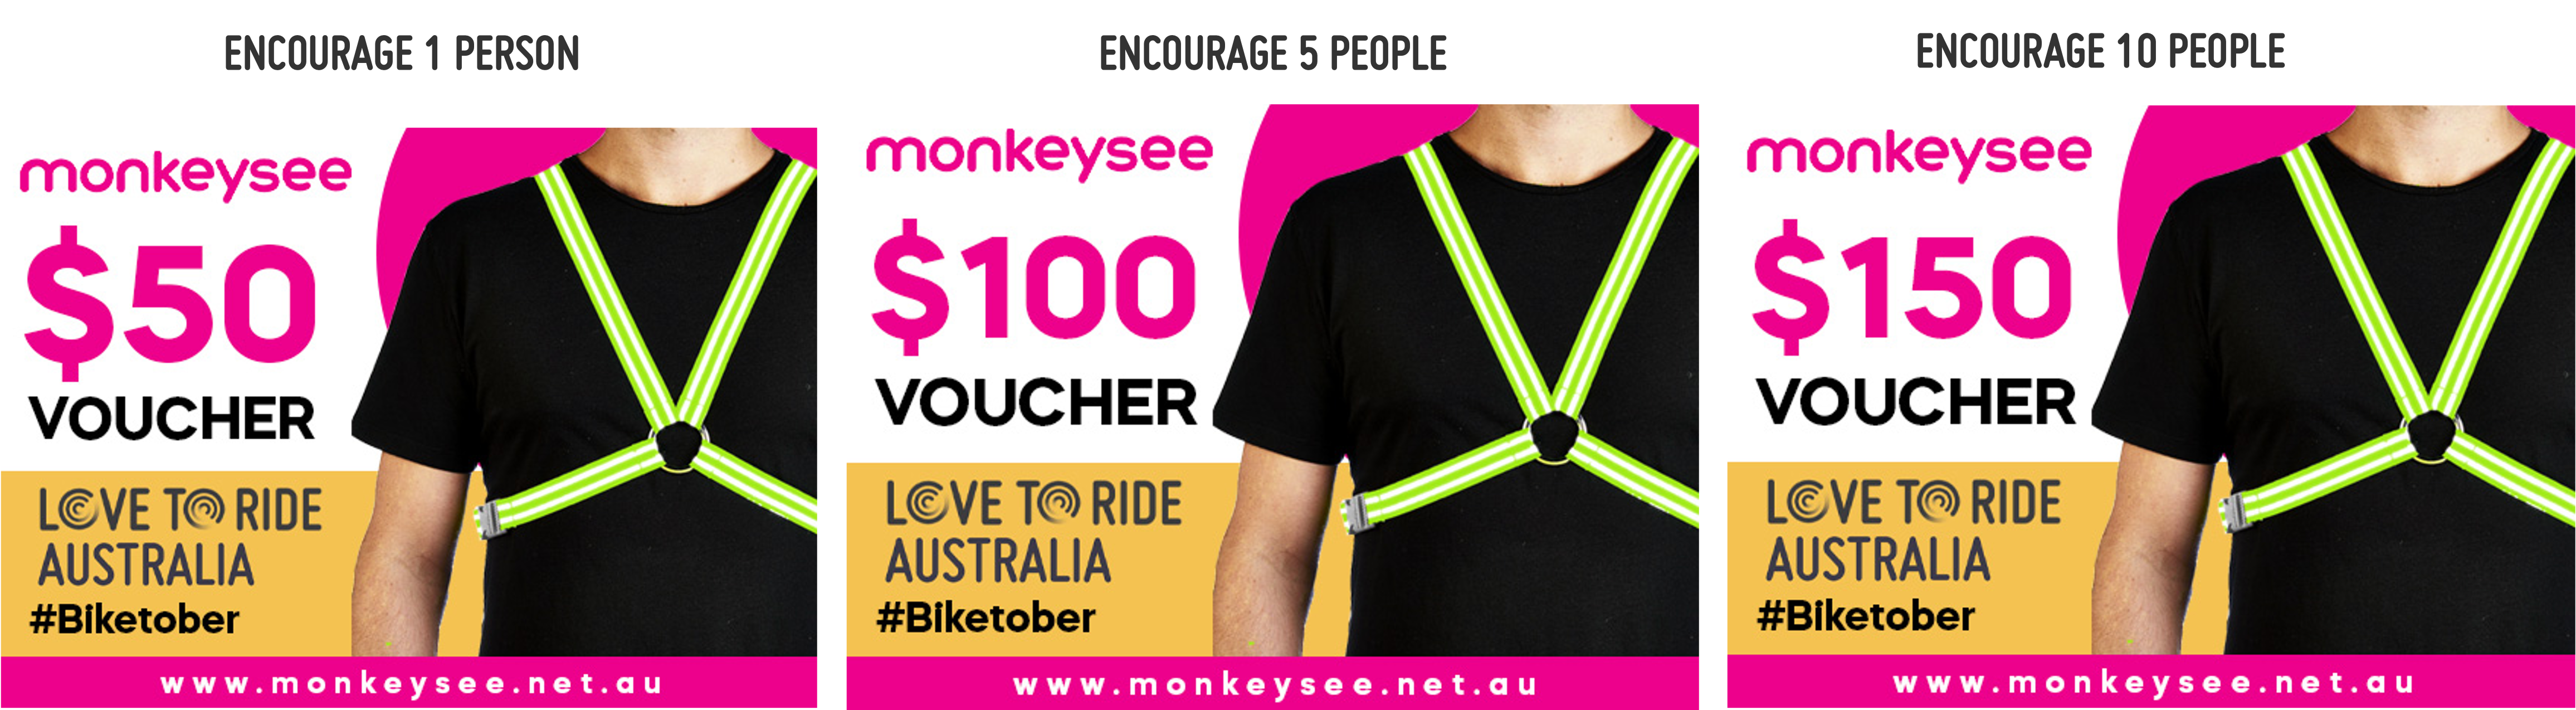 Monkey see graphic